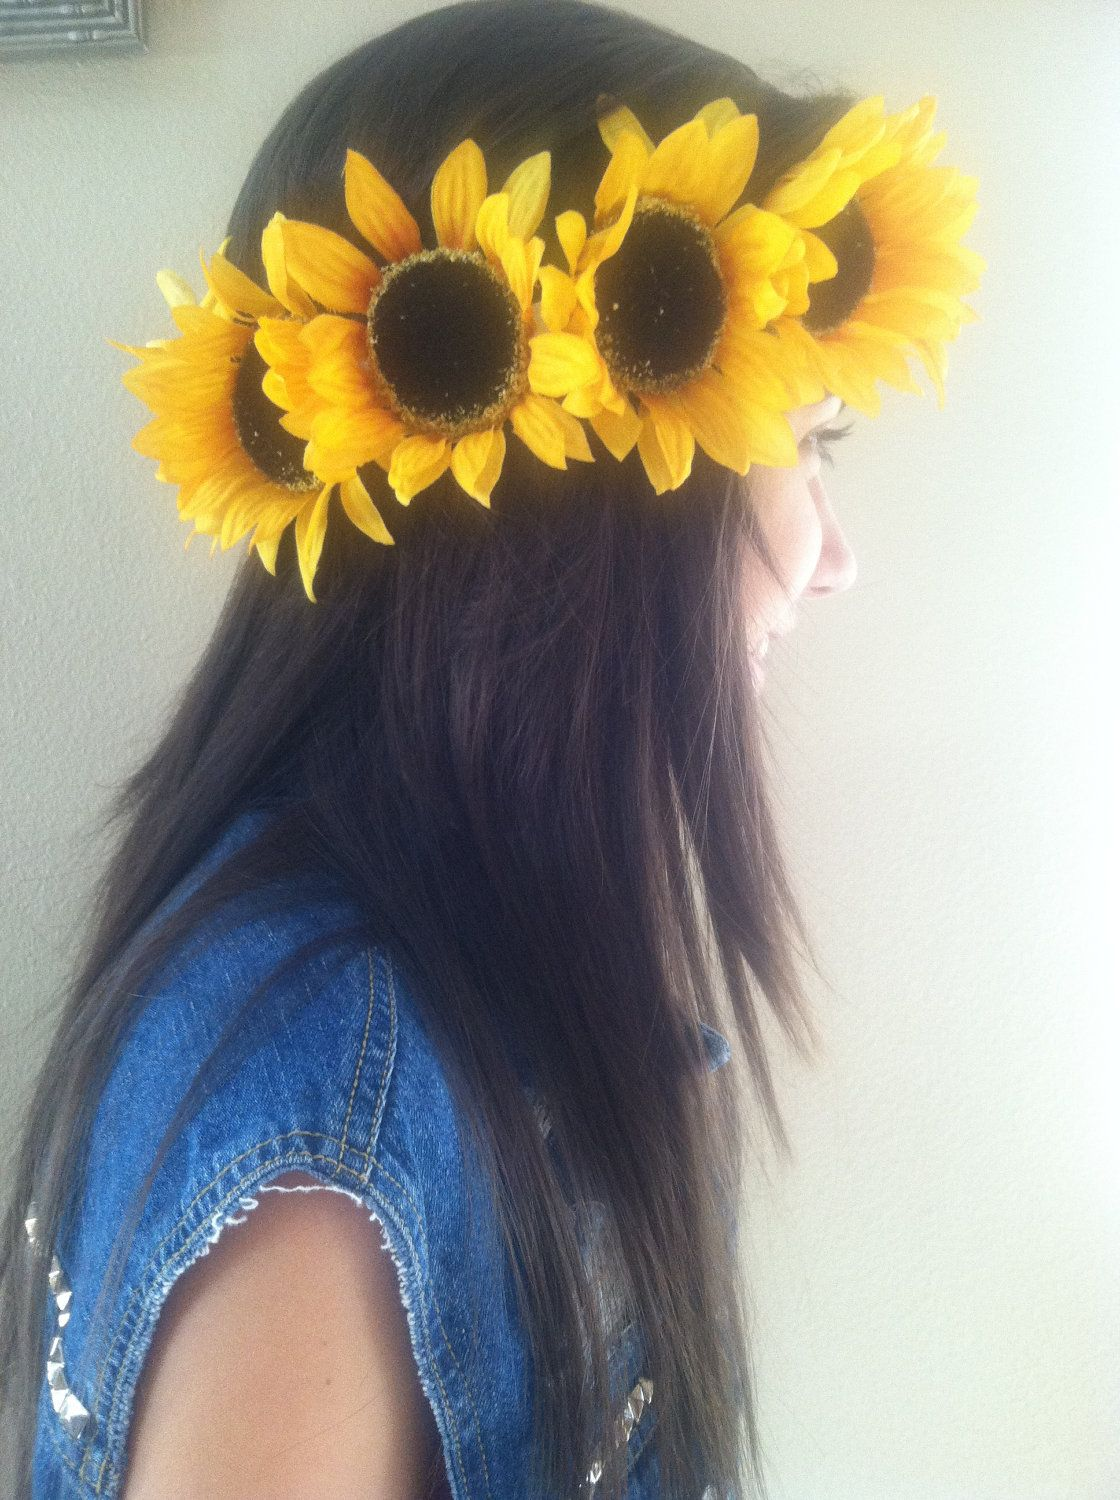 Sunflower Crown: Perfect for Festivals, Raves, and Halloween. $16.00, via Etsy.